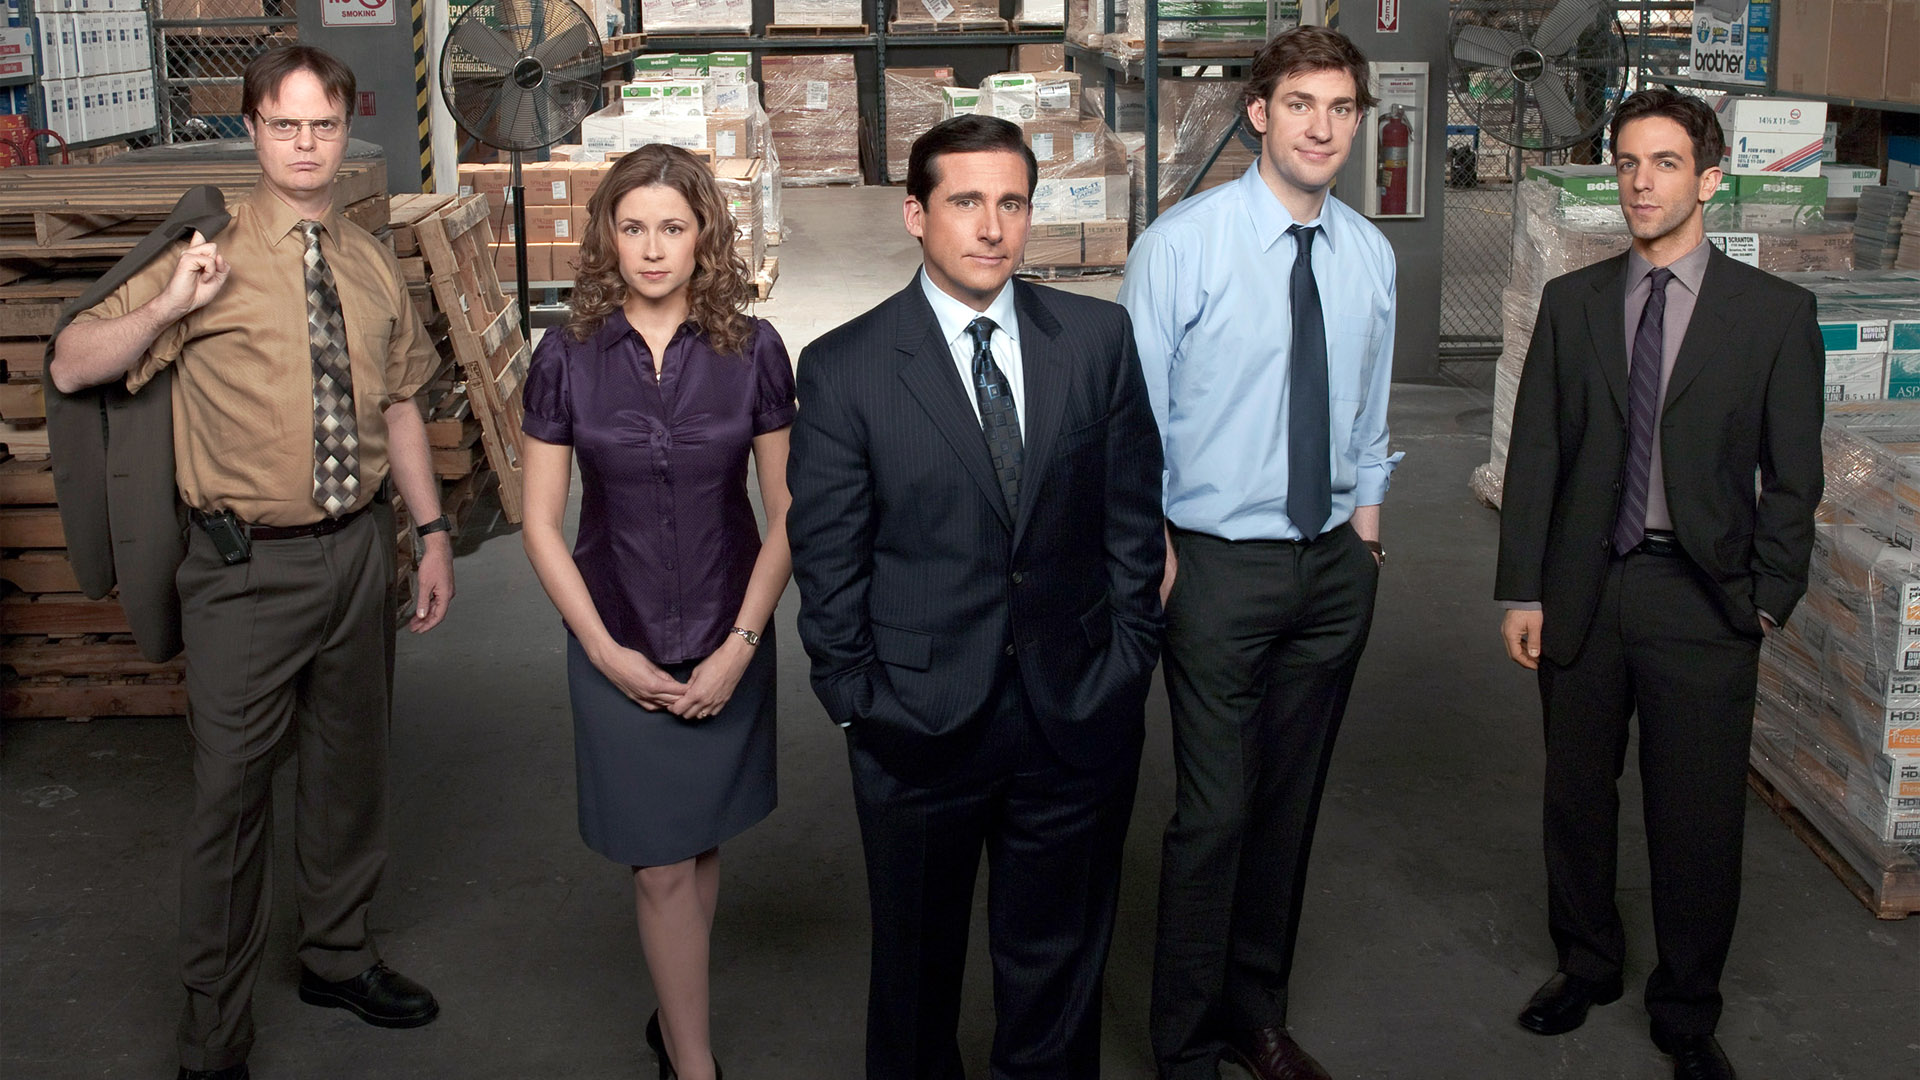 The Office US Full HD Wallpaper And Background Image